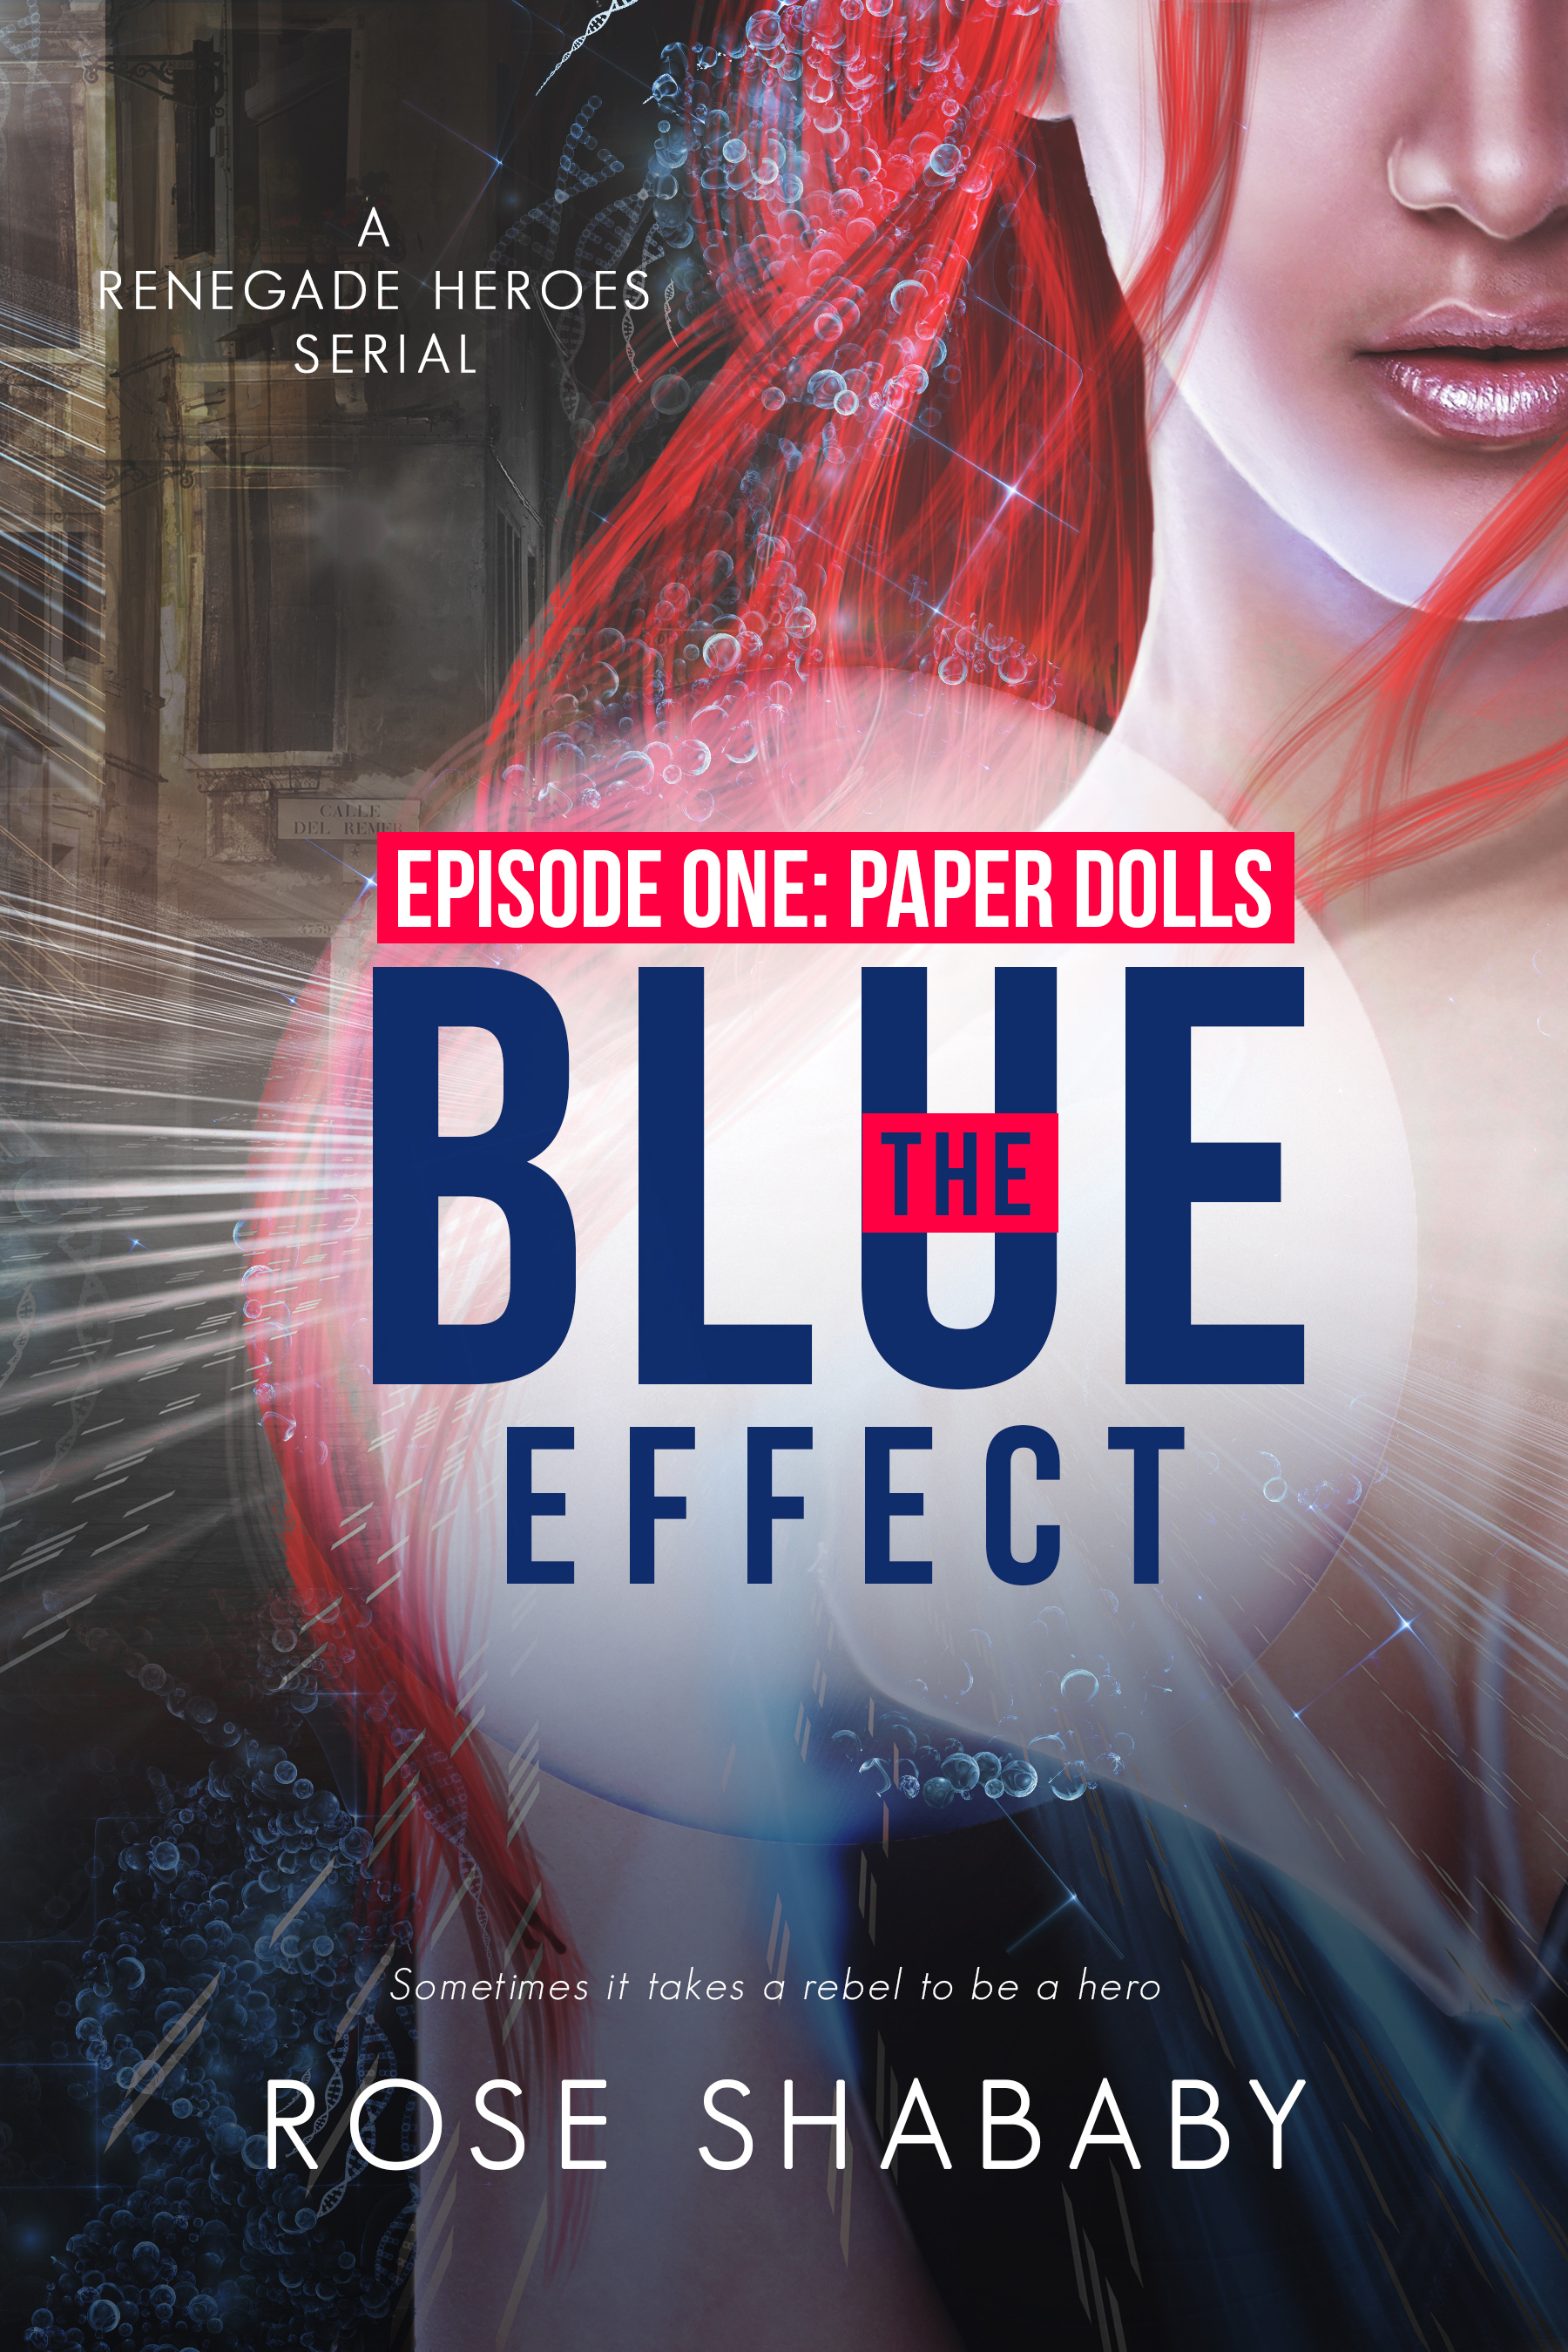 The Blue Effect, Episode One: Paper Dolls Rose Shababy